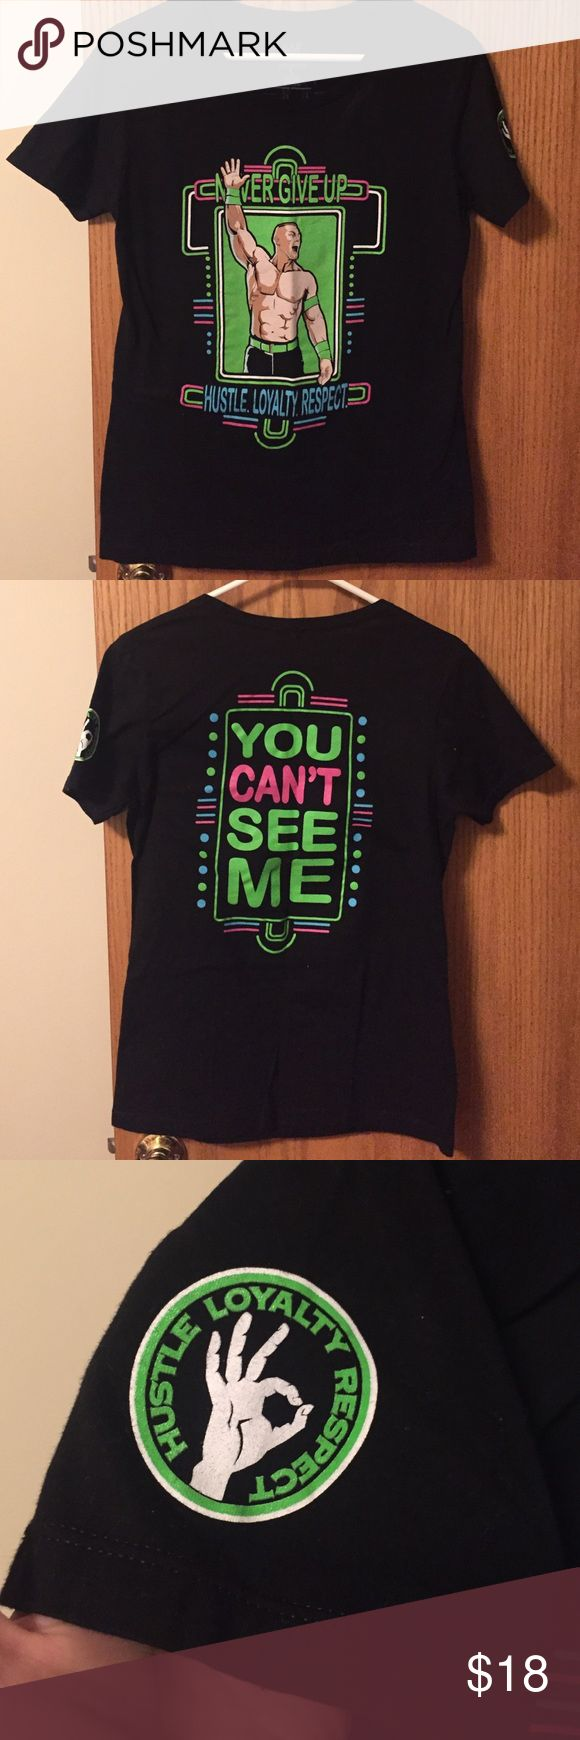 WWE John Cena ladies tee. Sz lg *read description Hustle, loyalty & respect! ✌You'll be able to drop an attitude adjustment on anyone with this authentic WWE ladies cut tee. Size large. Purchased for my daughter but she didn't like the women's cut, she prefers regular ole T shirts. These shirts run a little smaller so it's best for a medium or smaller large fit. I'm a medium & I've always purchased large women's tees from them to accommodate for shrinking. Has been washed but pretty sure not…